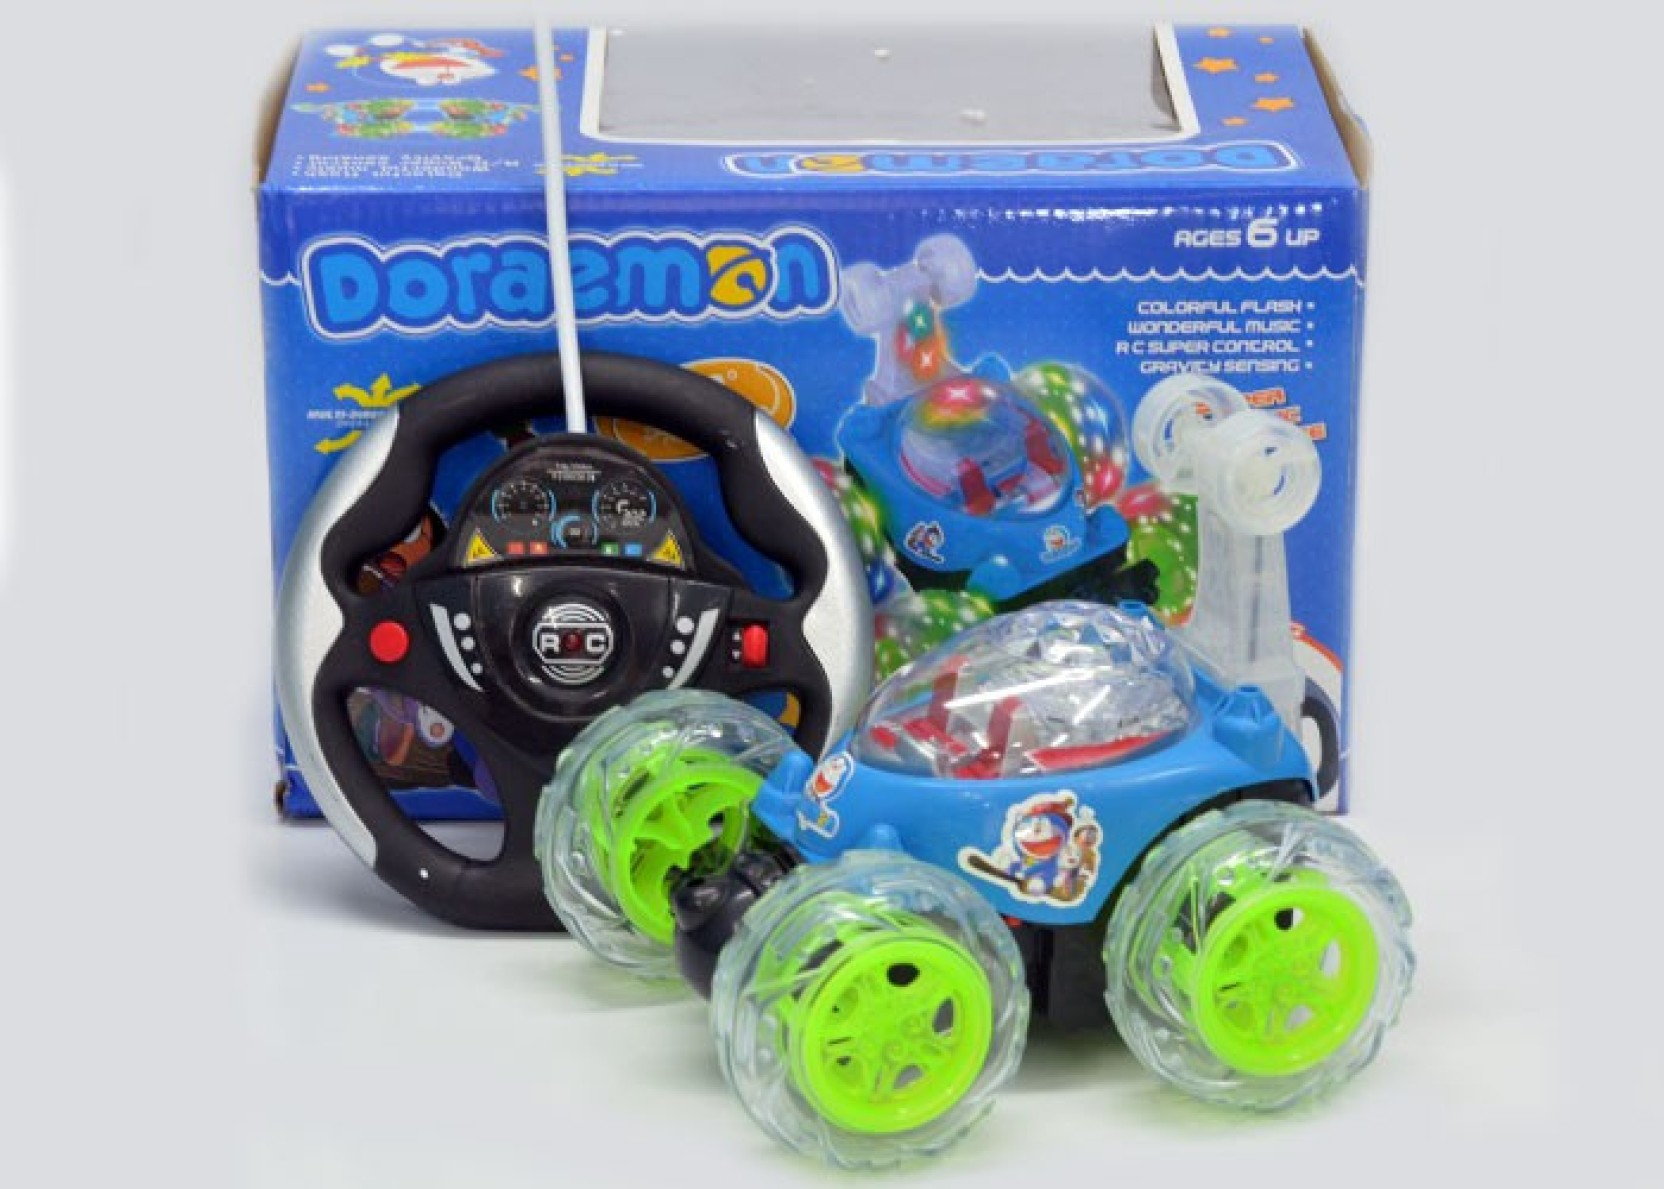 Doraemon Gravity Control Steering Stunt Car Remote Circuit Best Kids Toys Share